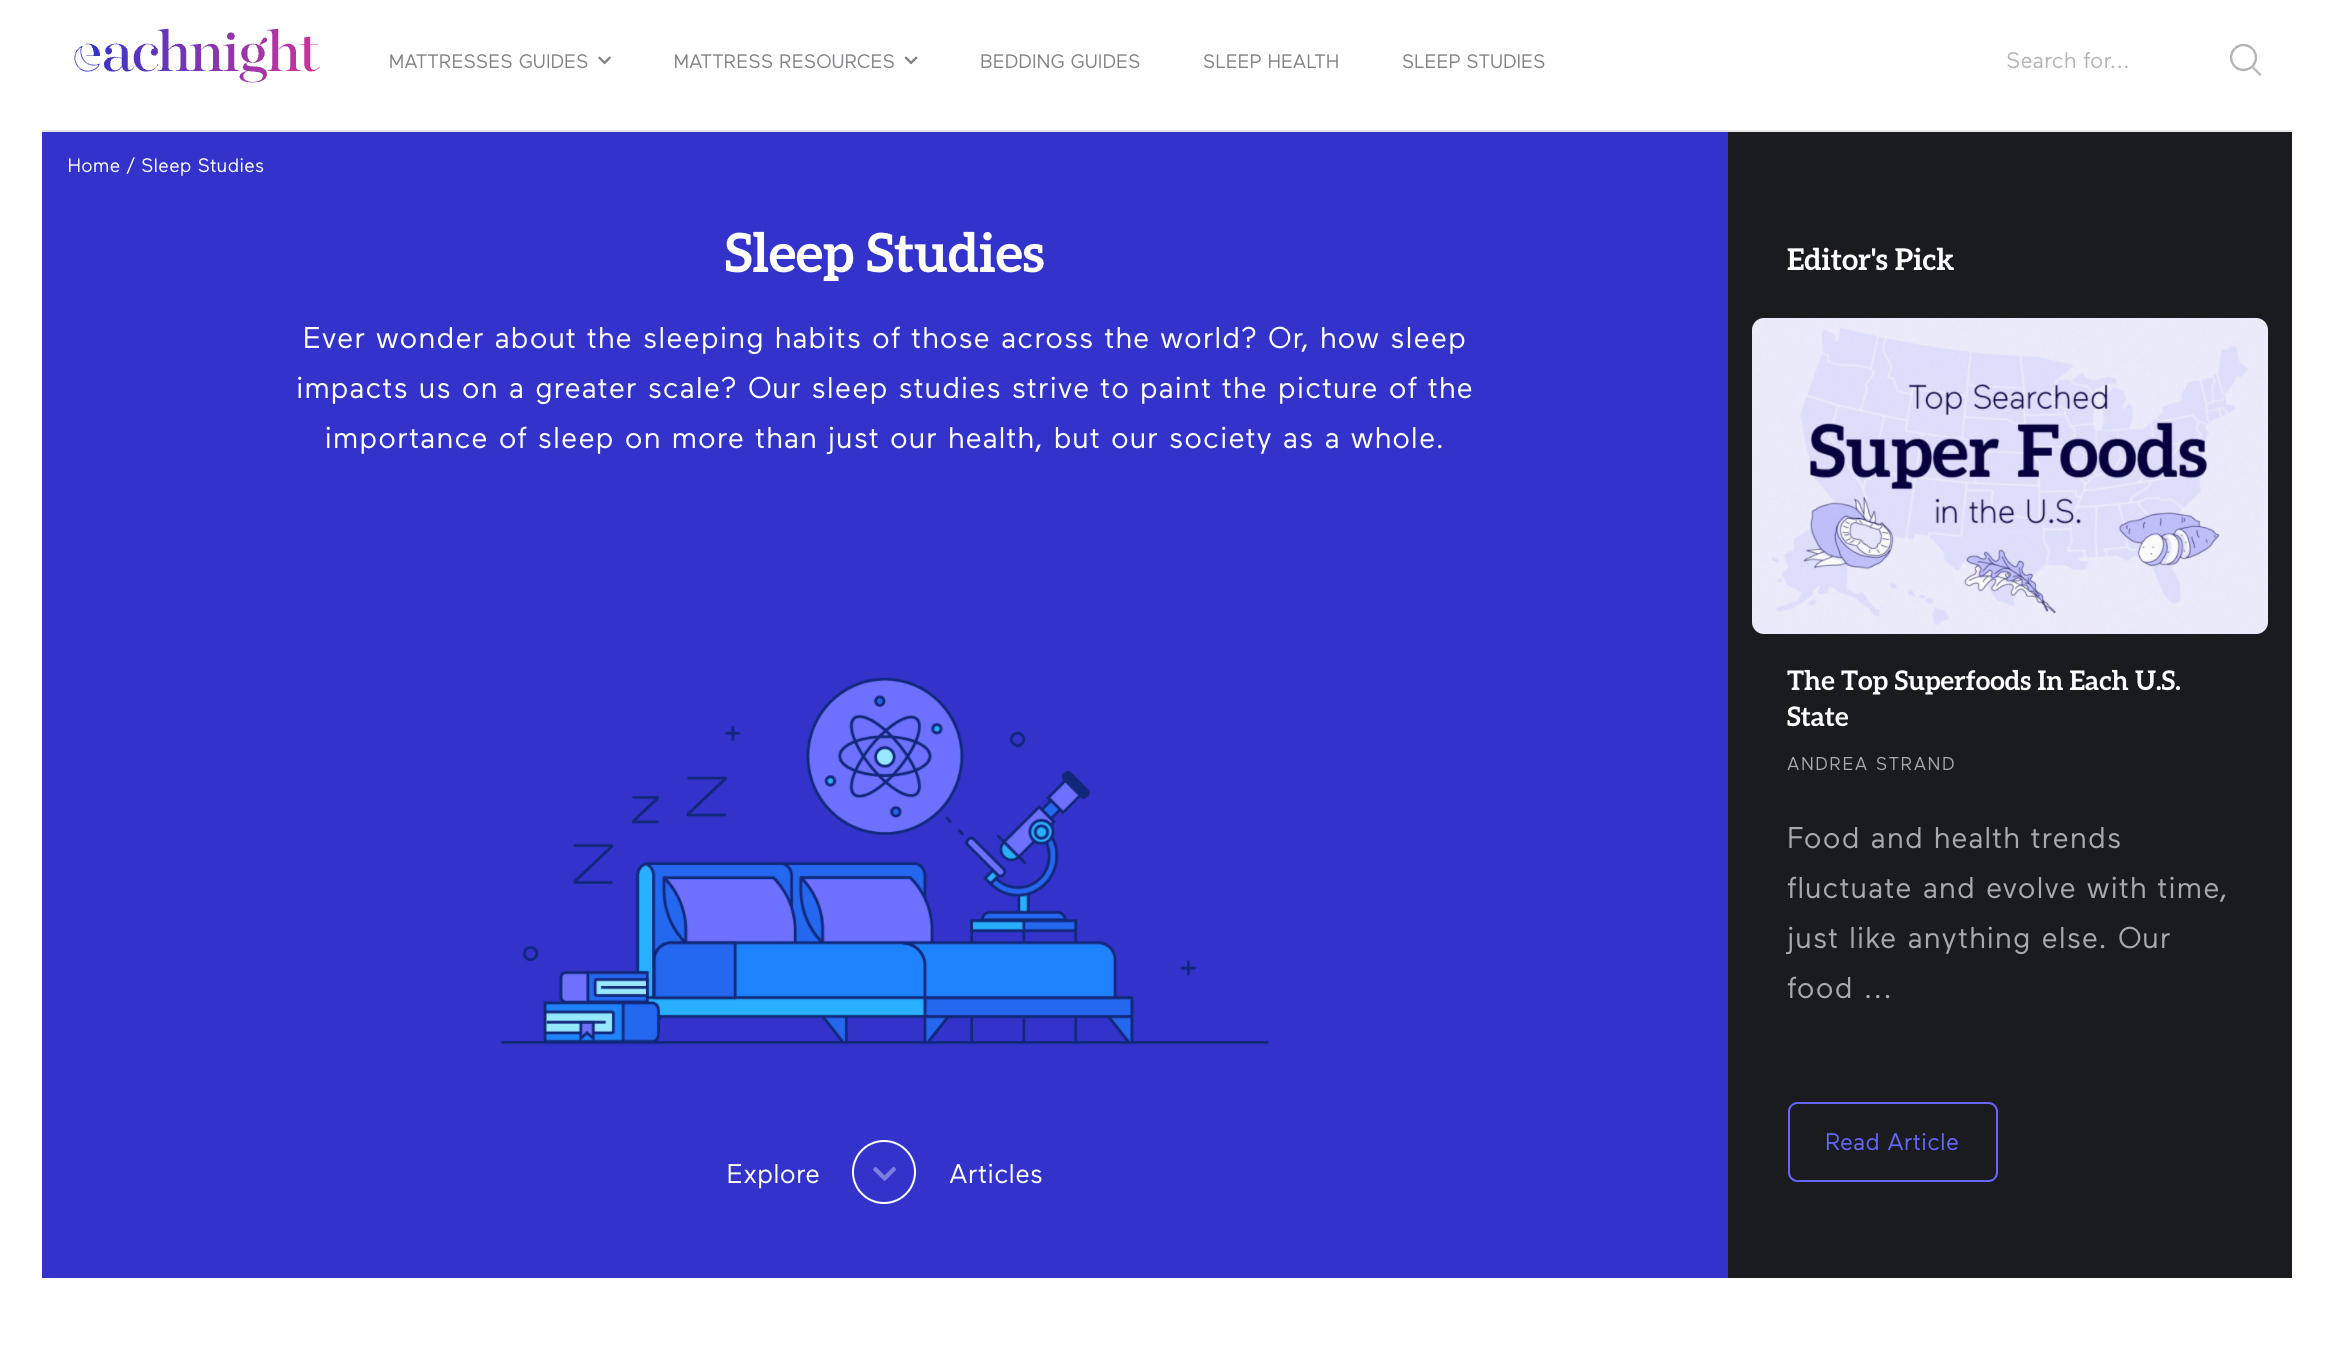 How Each Night uses content marketing to answer common questions about sleep